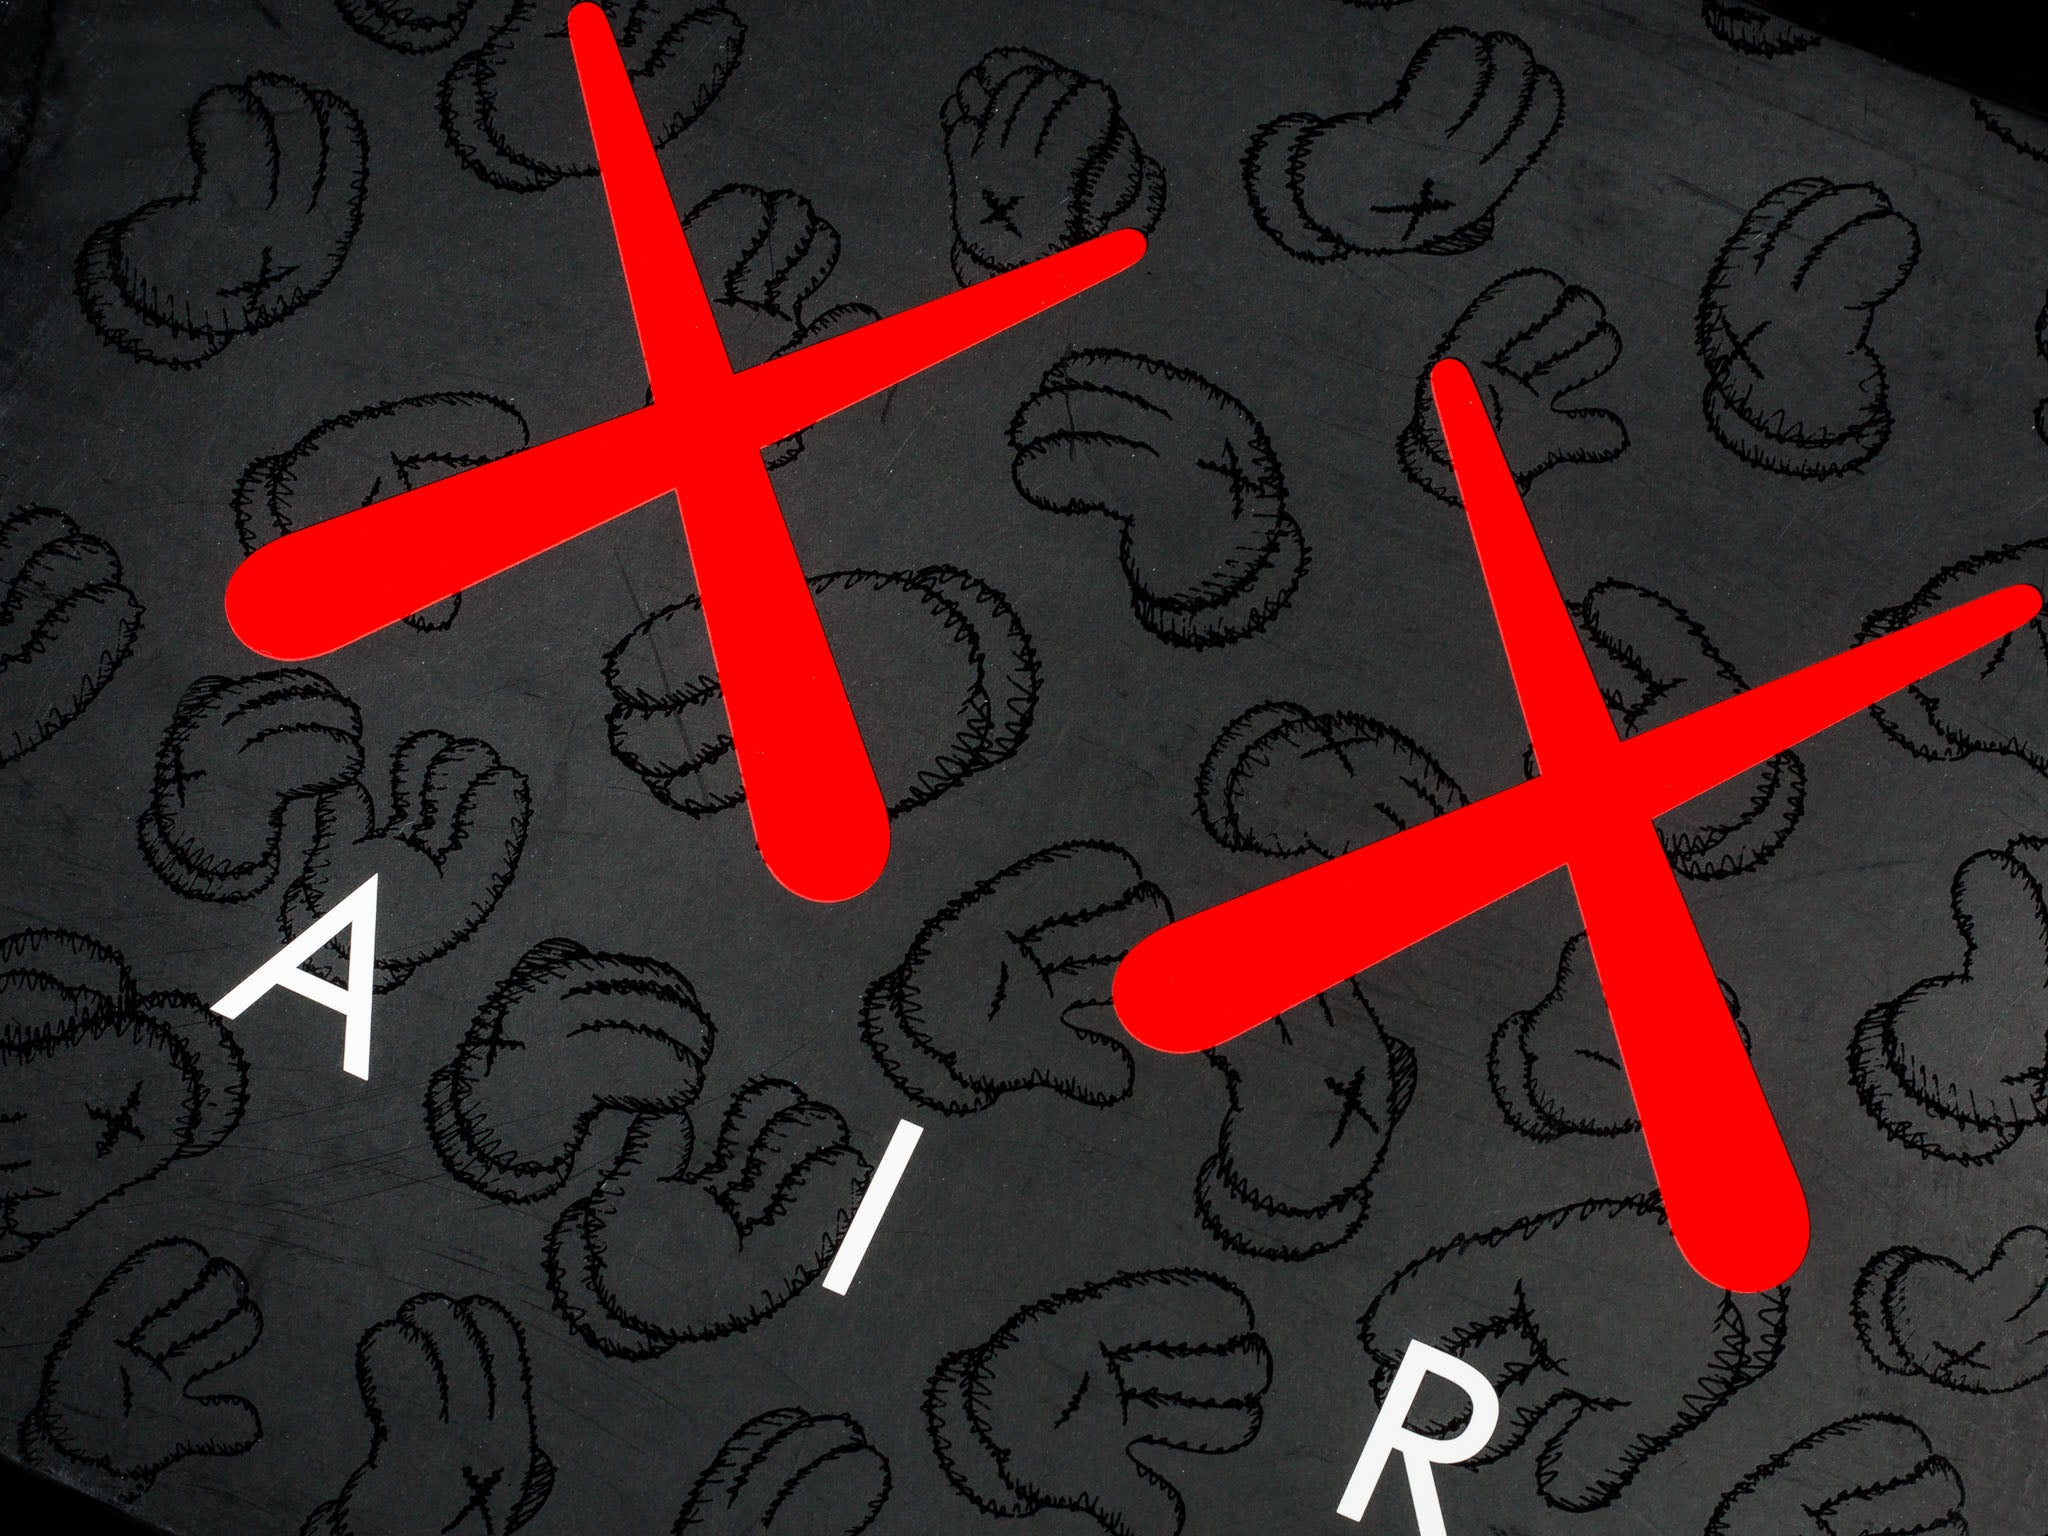 Jordan X Kaws on comme des garcons wallpaper